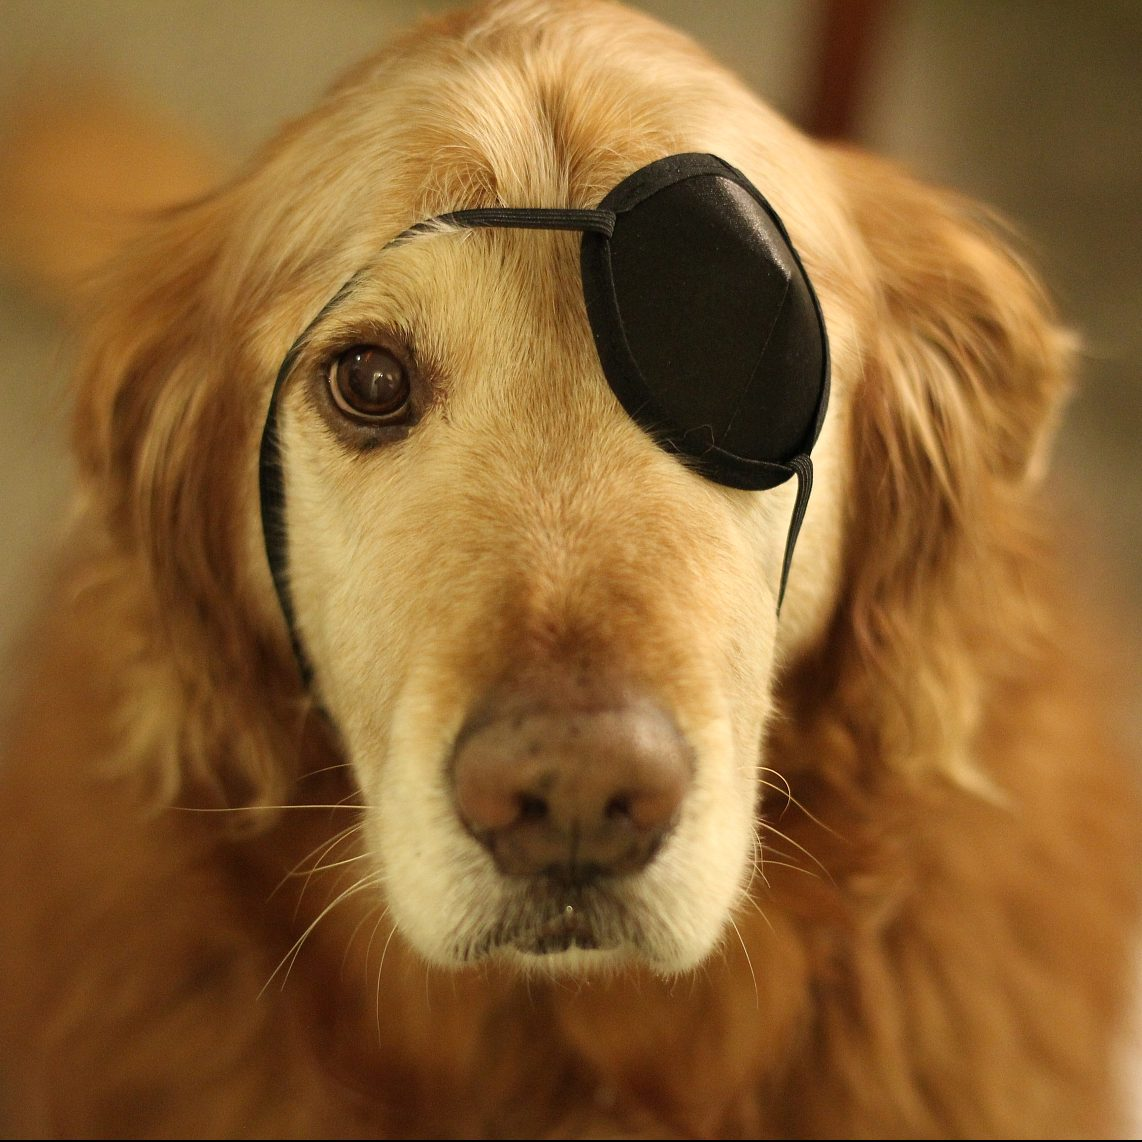 Golden Retriever, Fluffster, looking at camera with eye patch